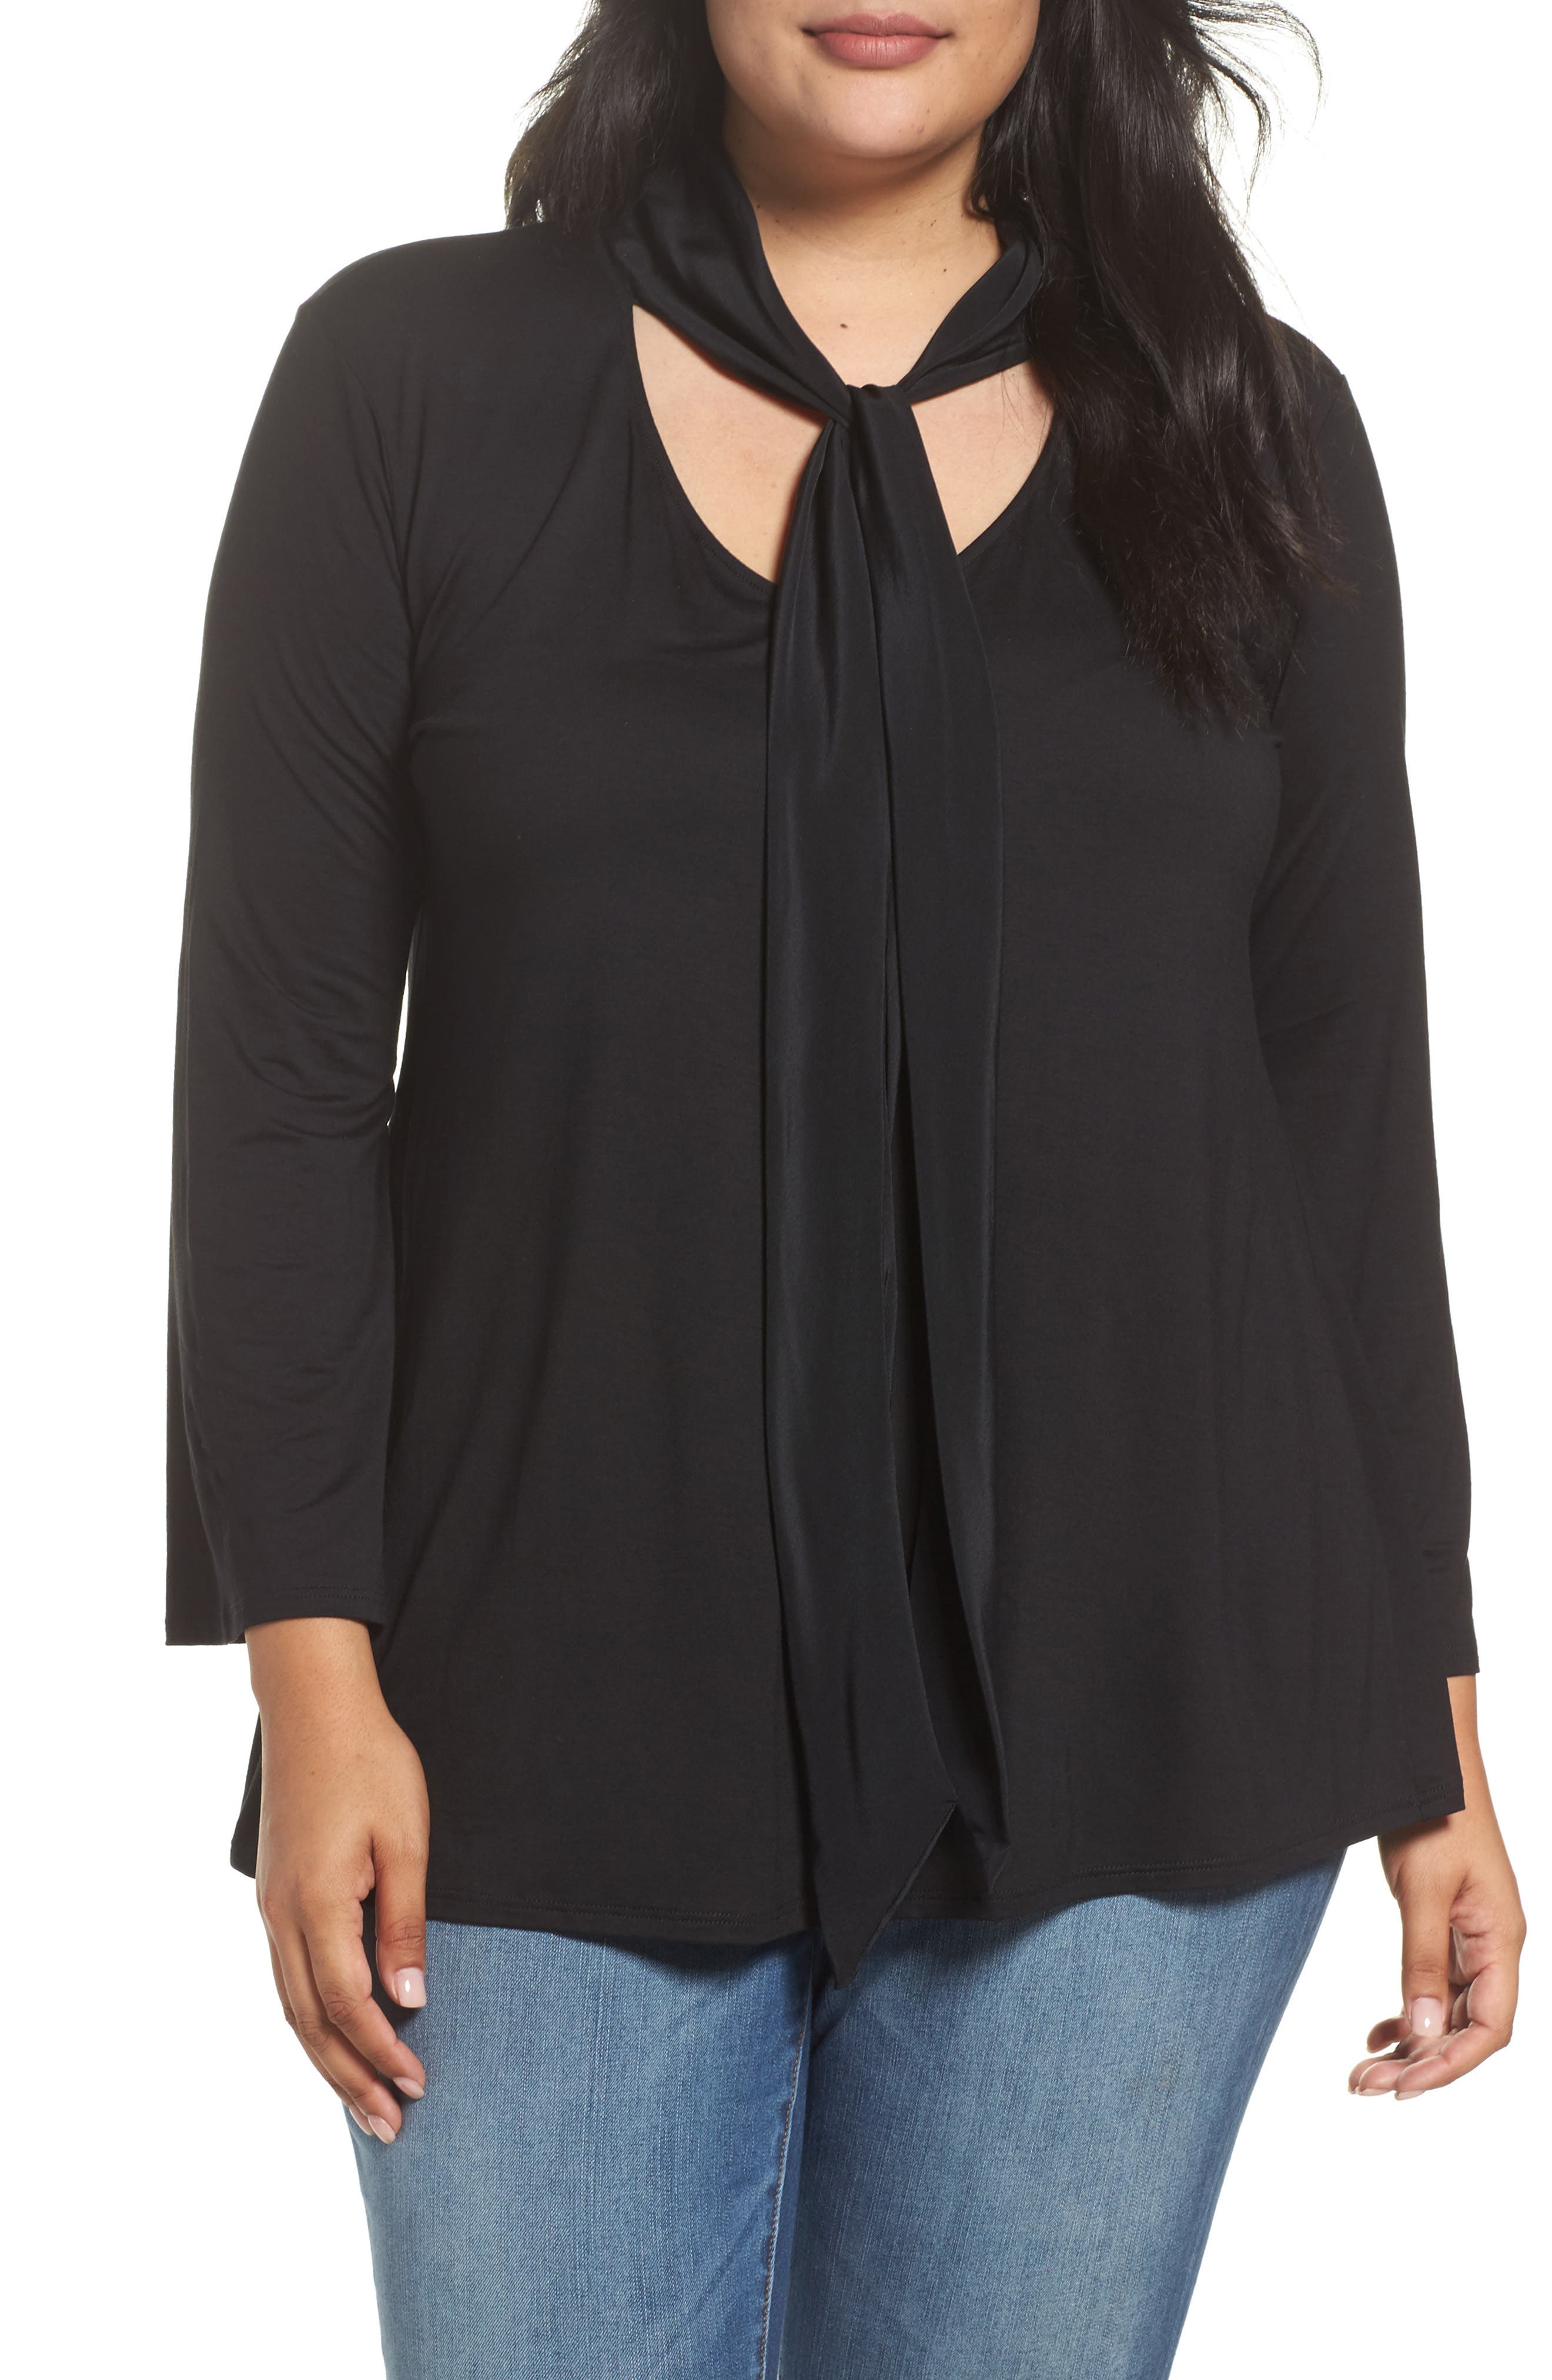 Main Image - Three Dots Tie Neck Jersey Top (Plus Size)